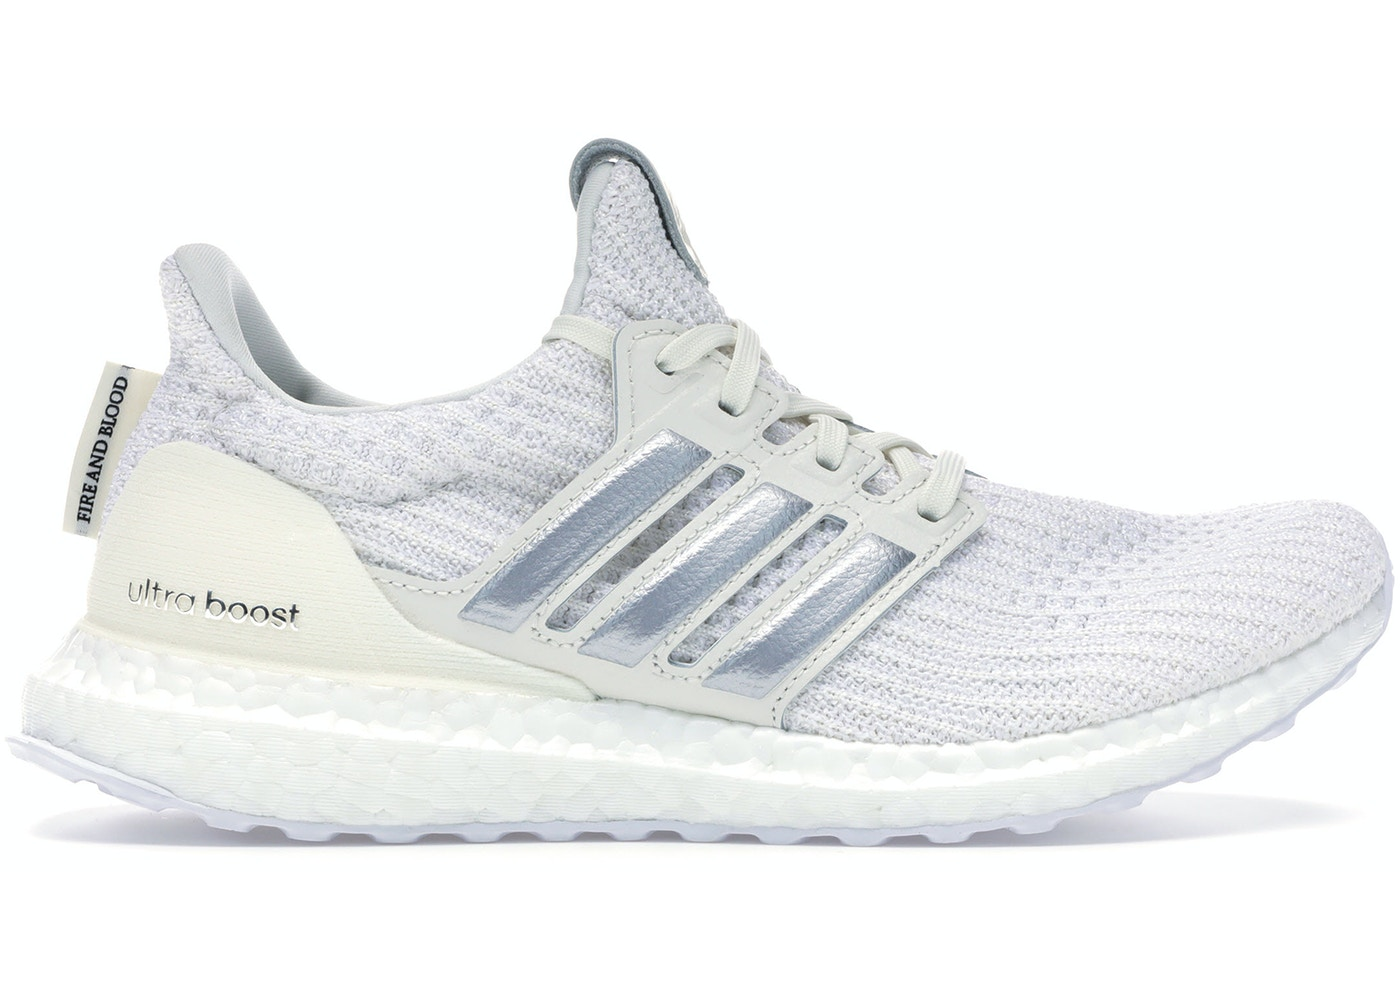 a967832e17964 adidas Ultra Boost Shoes - New Lowest Asks